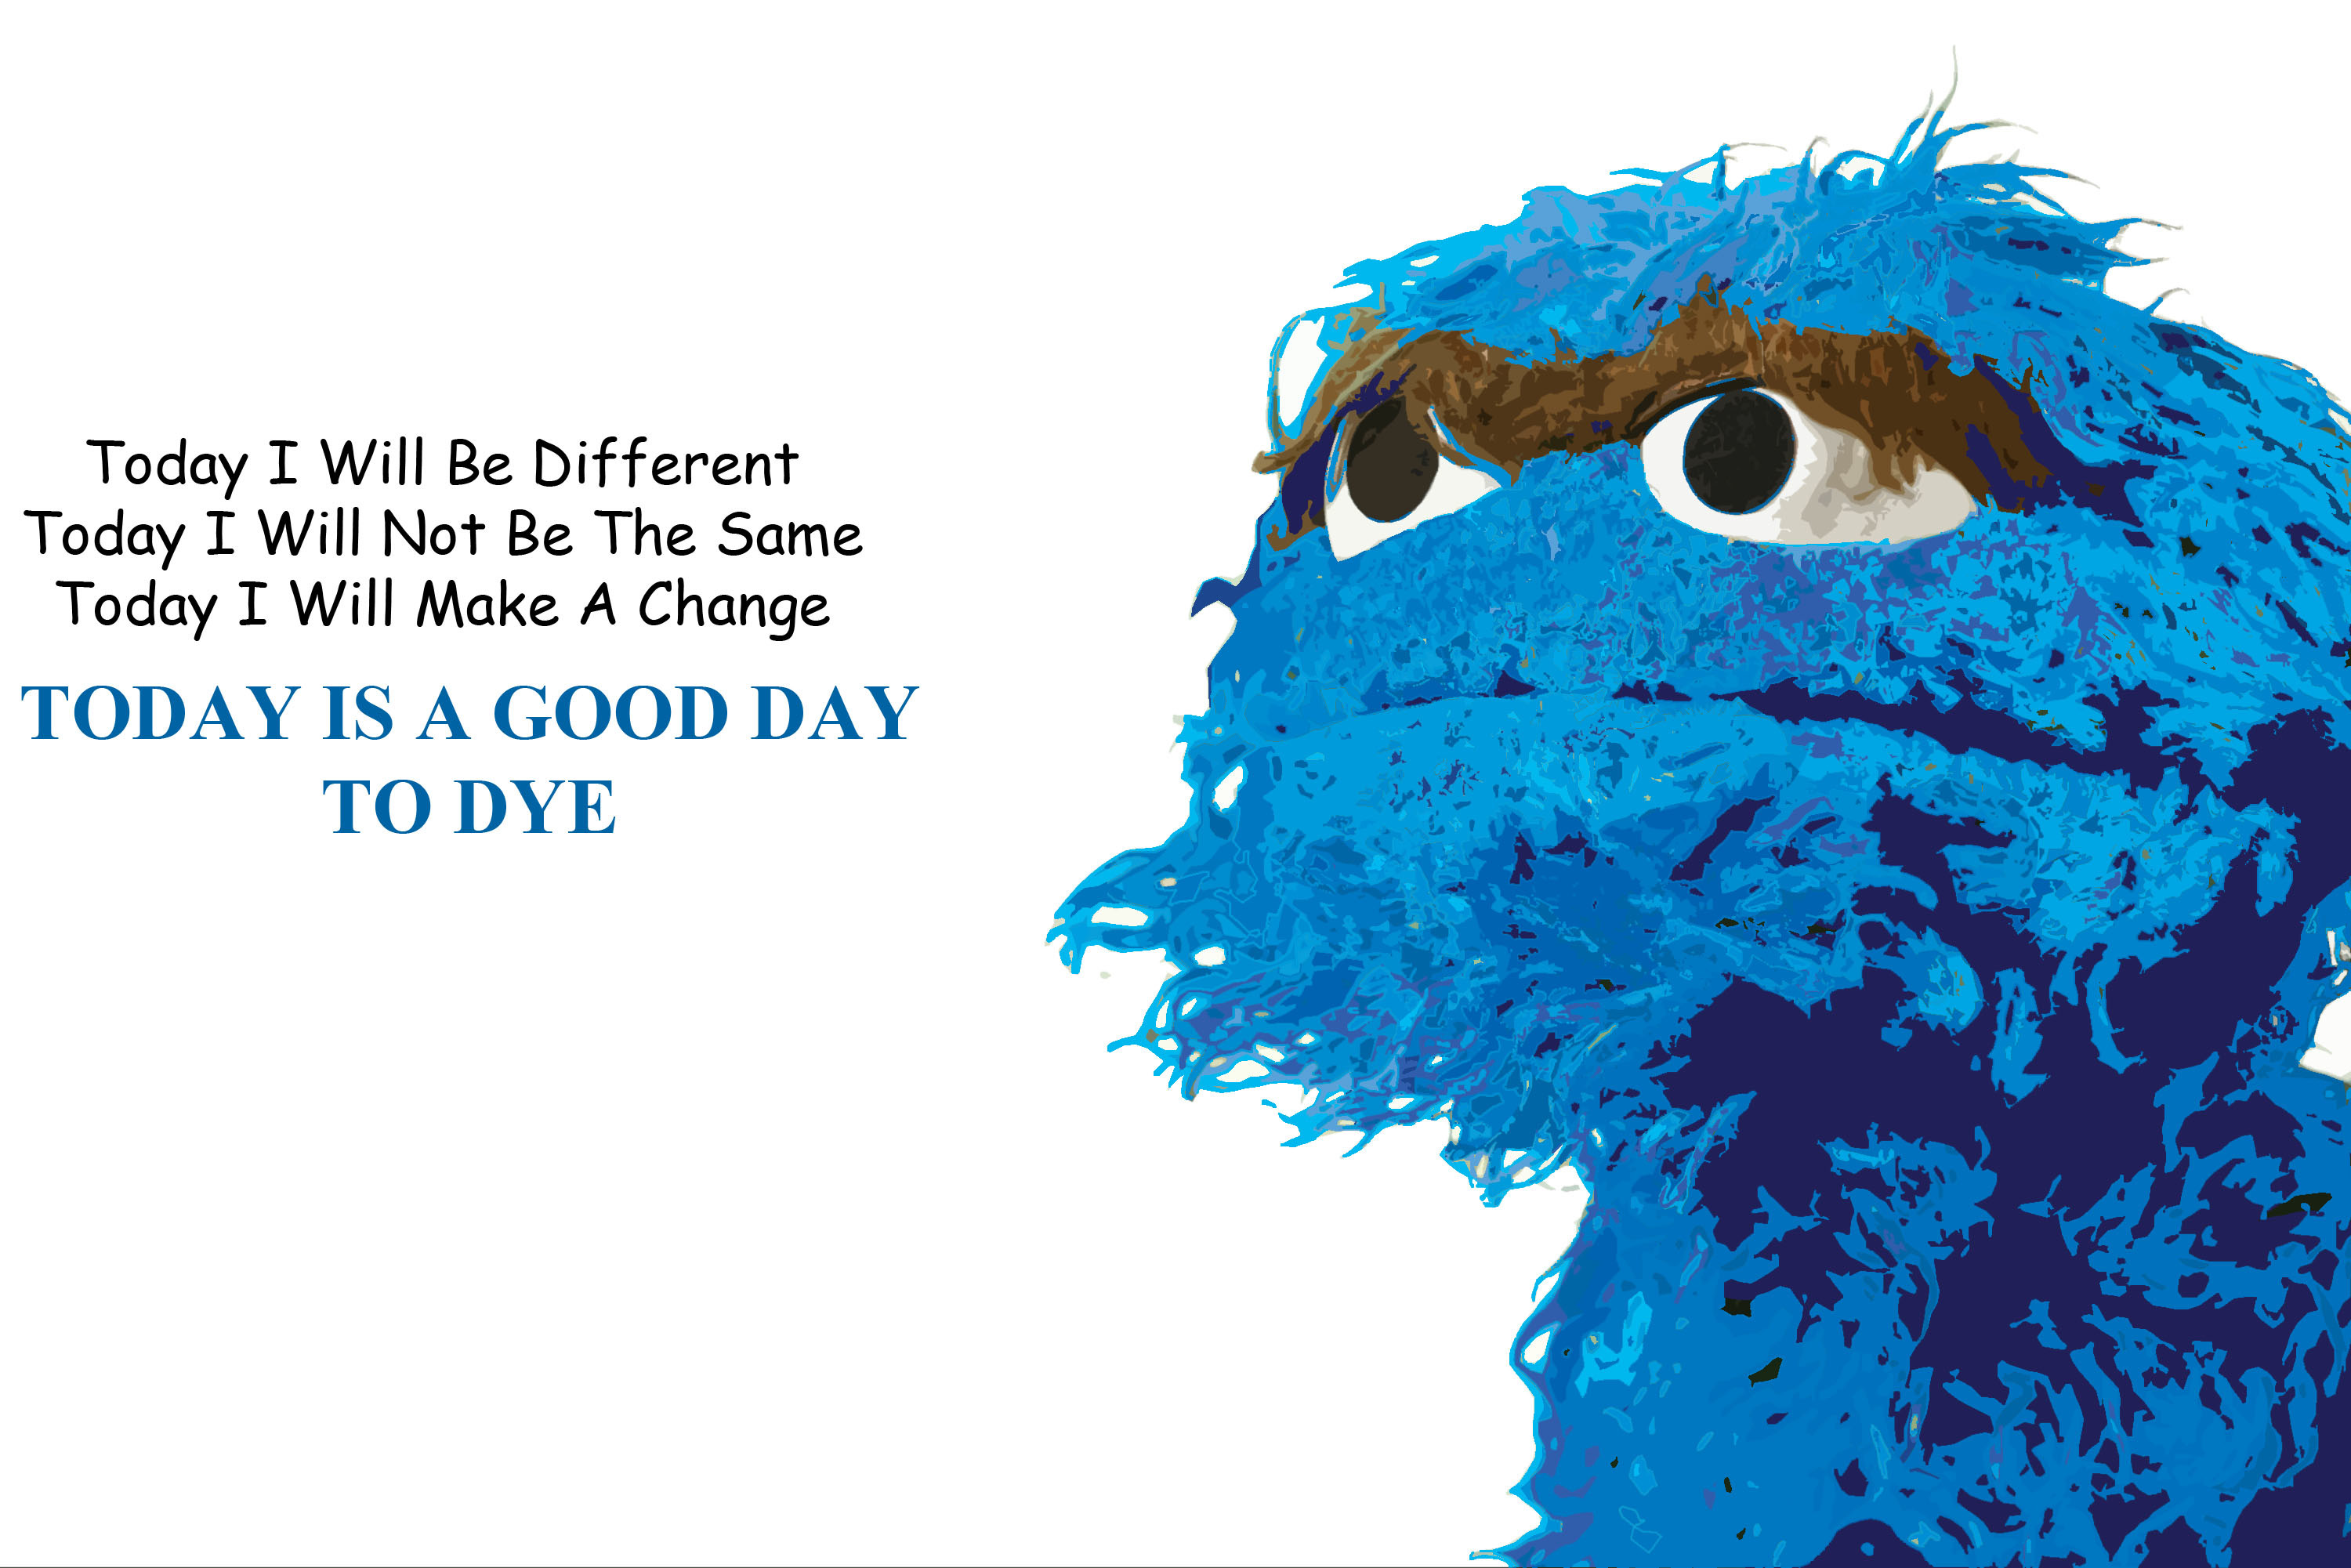 Cookie monster wallpaper hd 70 images - Cookie monster wallpaper ...